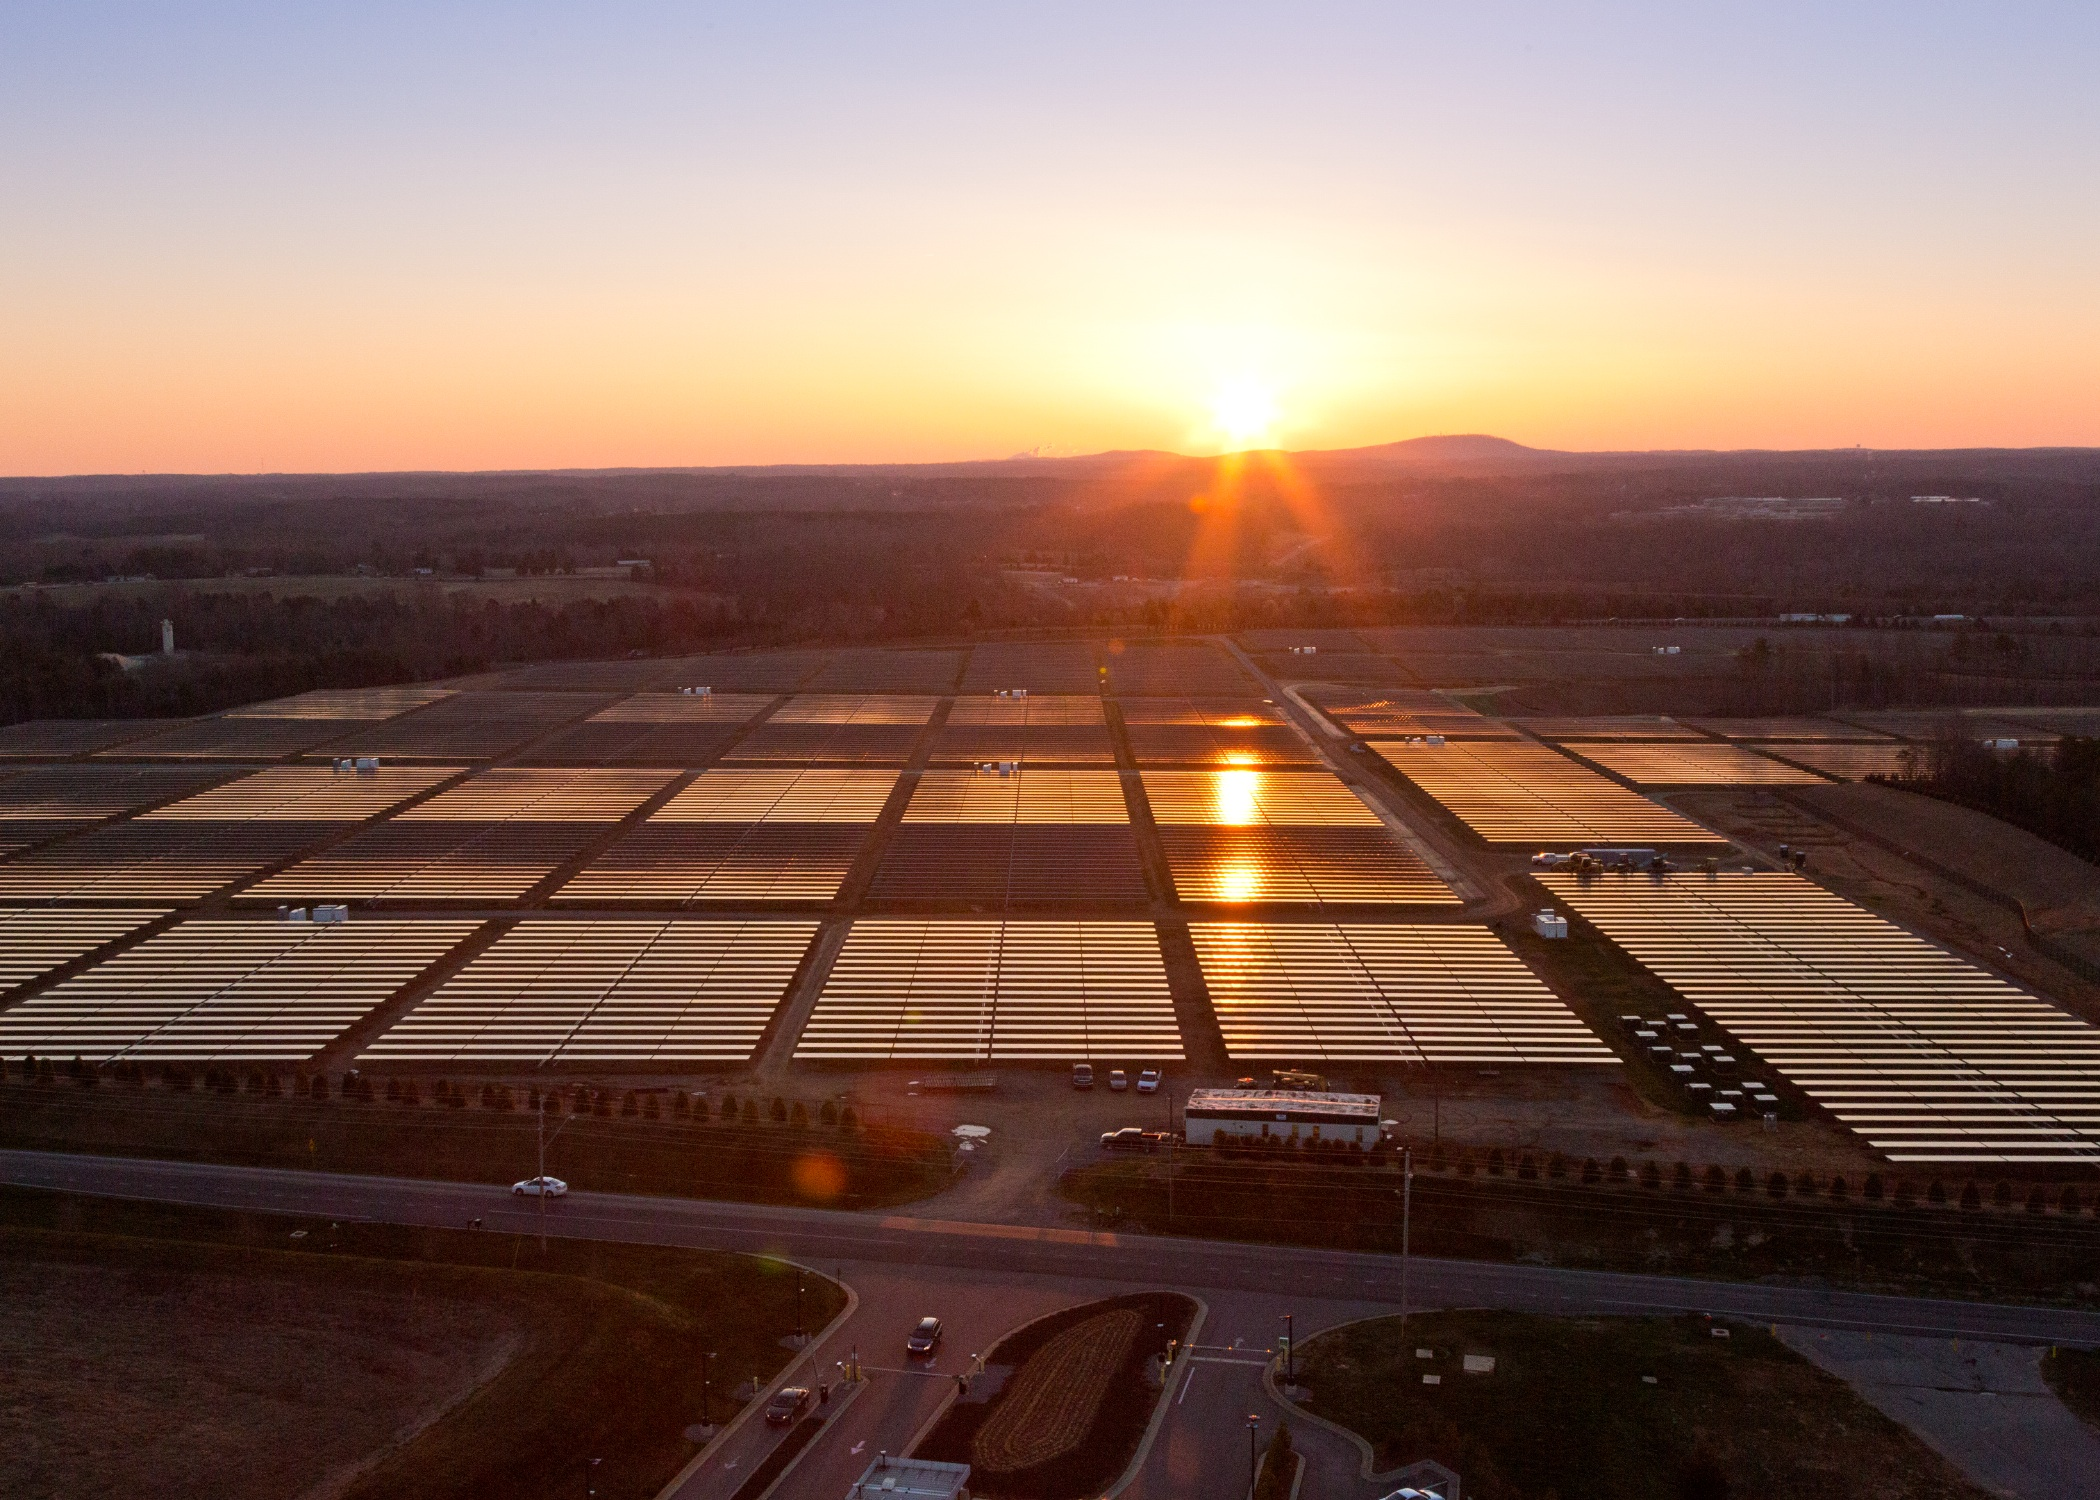 Apple's solar farm in North Carolina. Image courtesy of Apple.